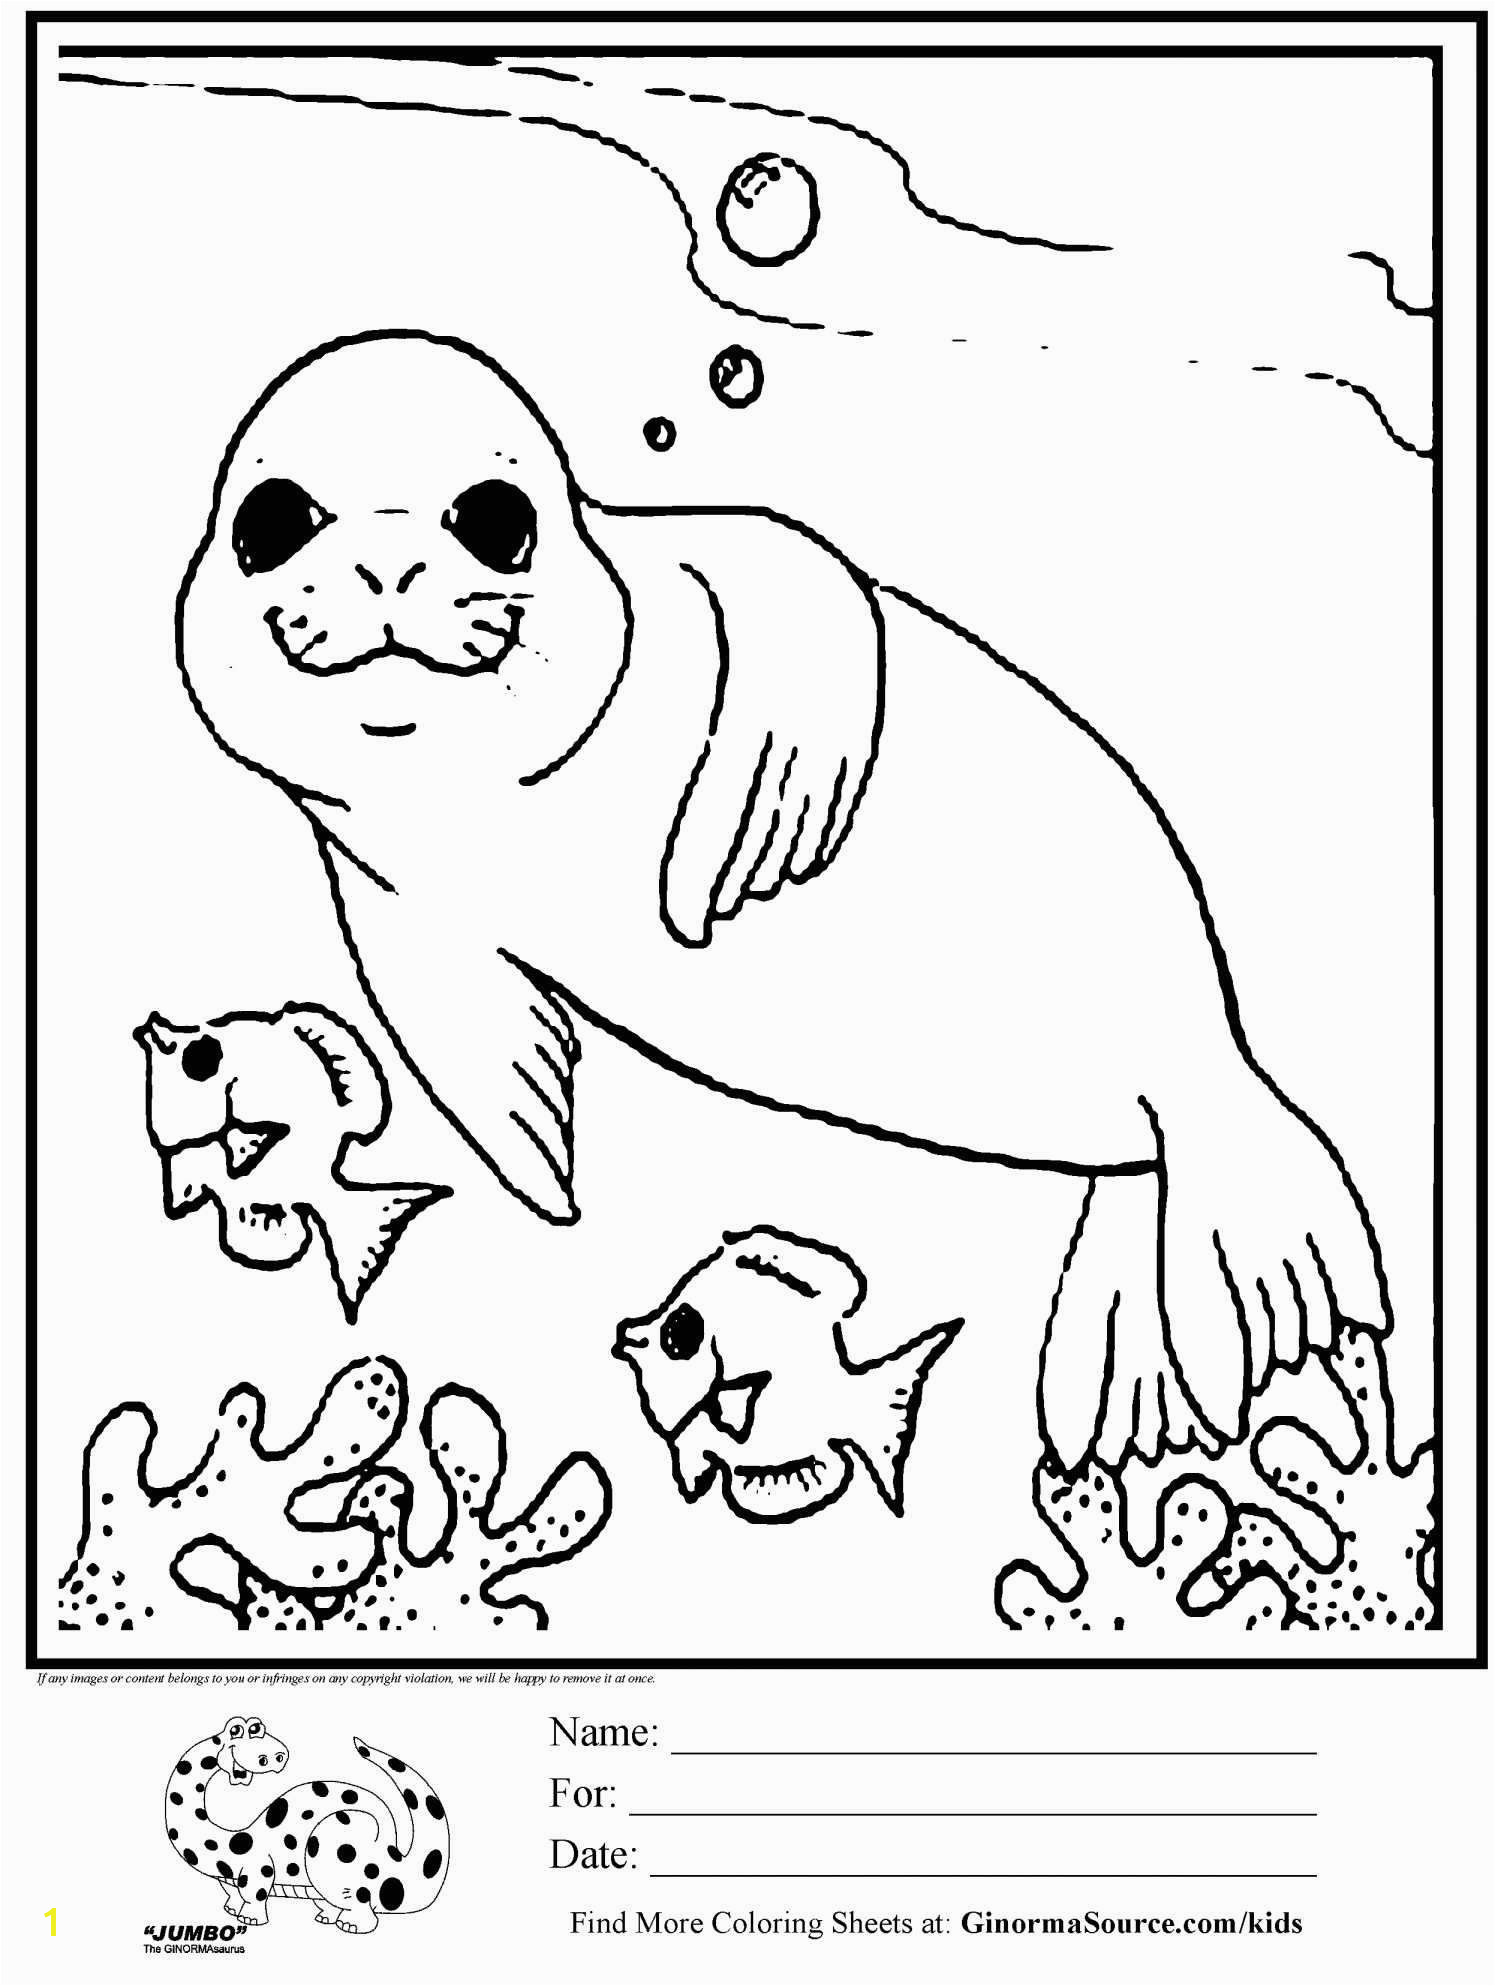 Christmas Coloring Pages Free Download Printable Christmas Coloring Pages Baby Jesus Printable Od Dog